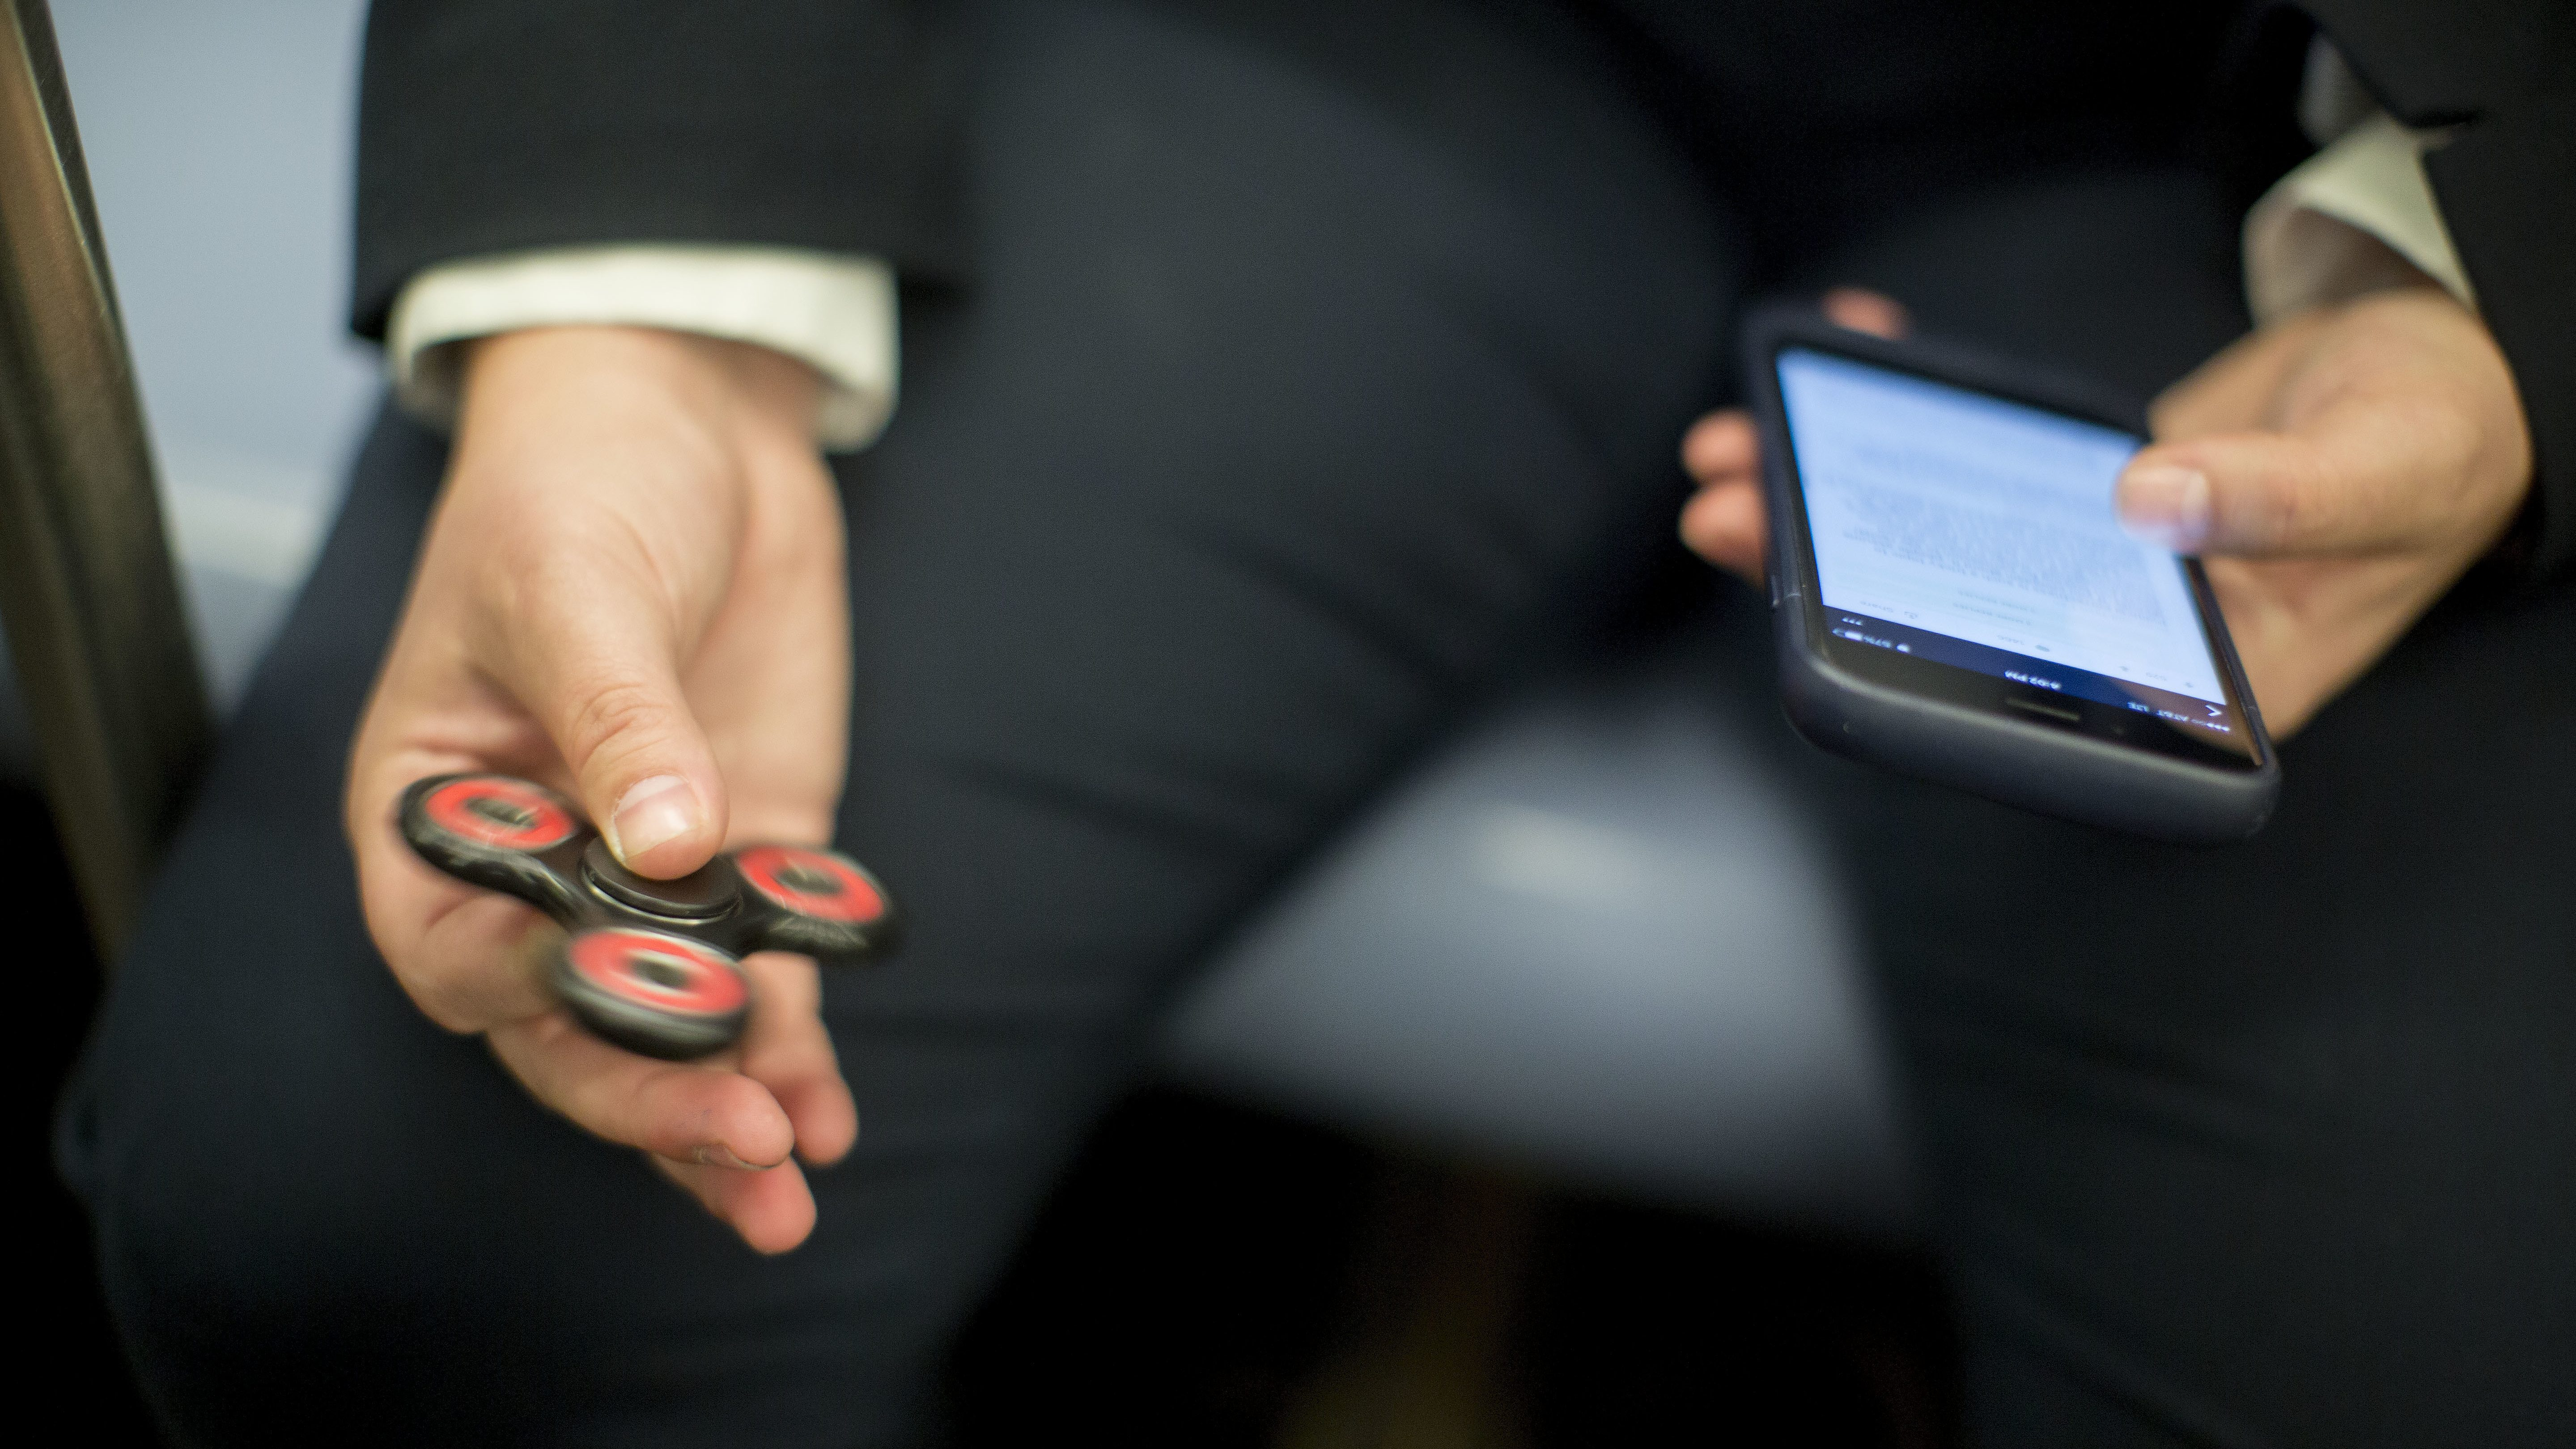 In this Wednesday, May 10, 2017, photo, attorney Kim Juszczak uses a fidget spinner while riding the subway in New York. Fidget spinners have been around for years, mostly used by kids with autism or attention disorders to help them concentrate. But they exploded in popularity this spring. Juszczak likes to whirl her spinner on the subway or while she's thinking up legal arguments for a case. (AP Photo/Mary Altaffer)